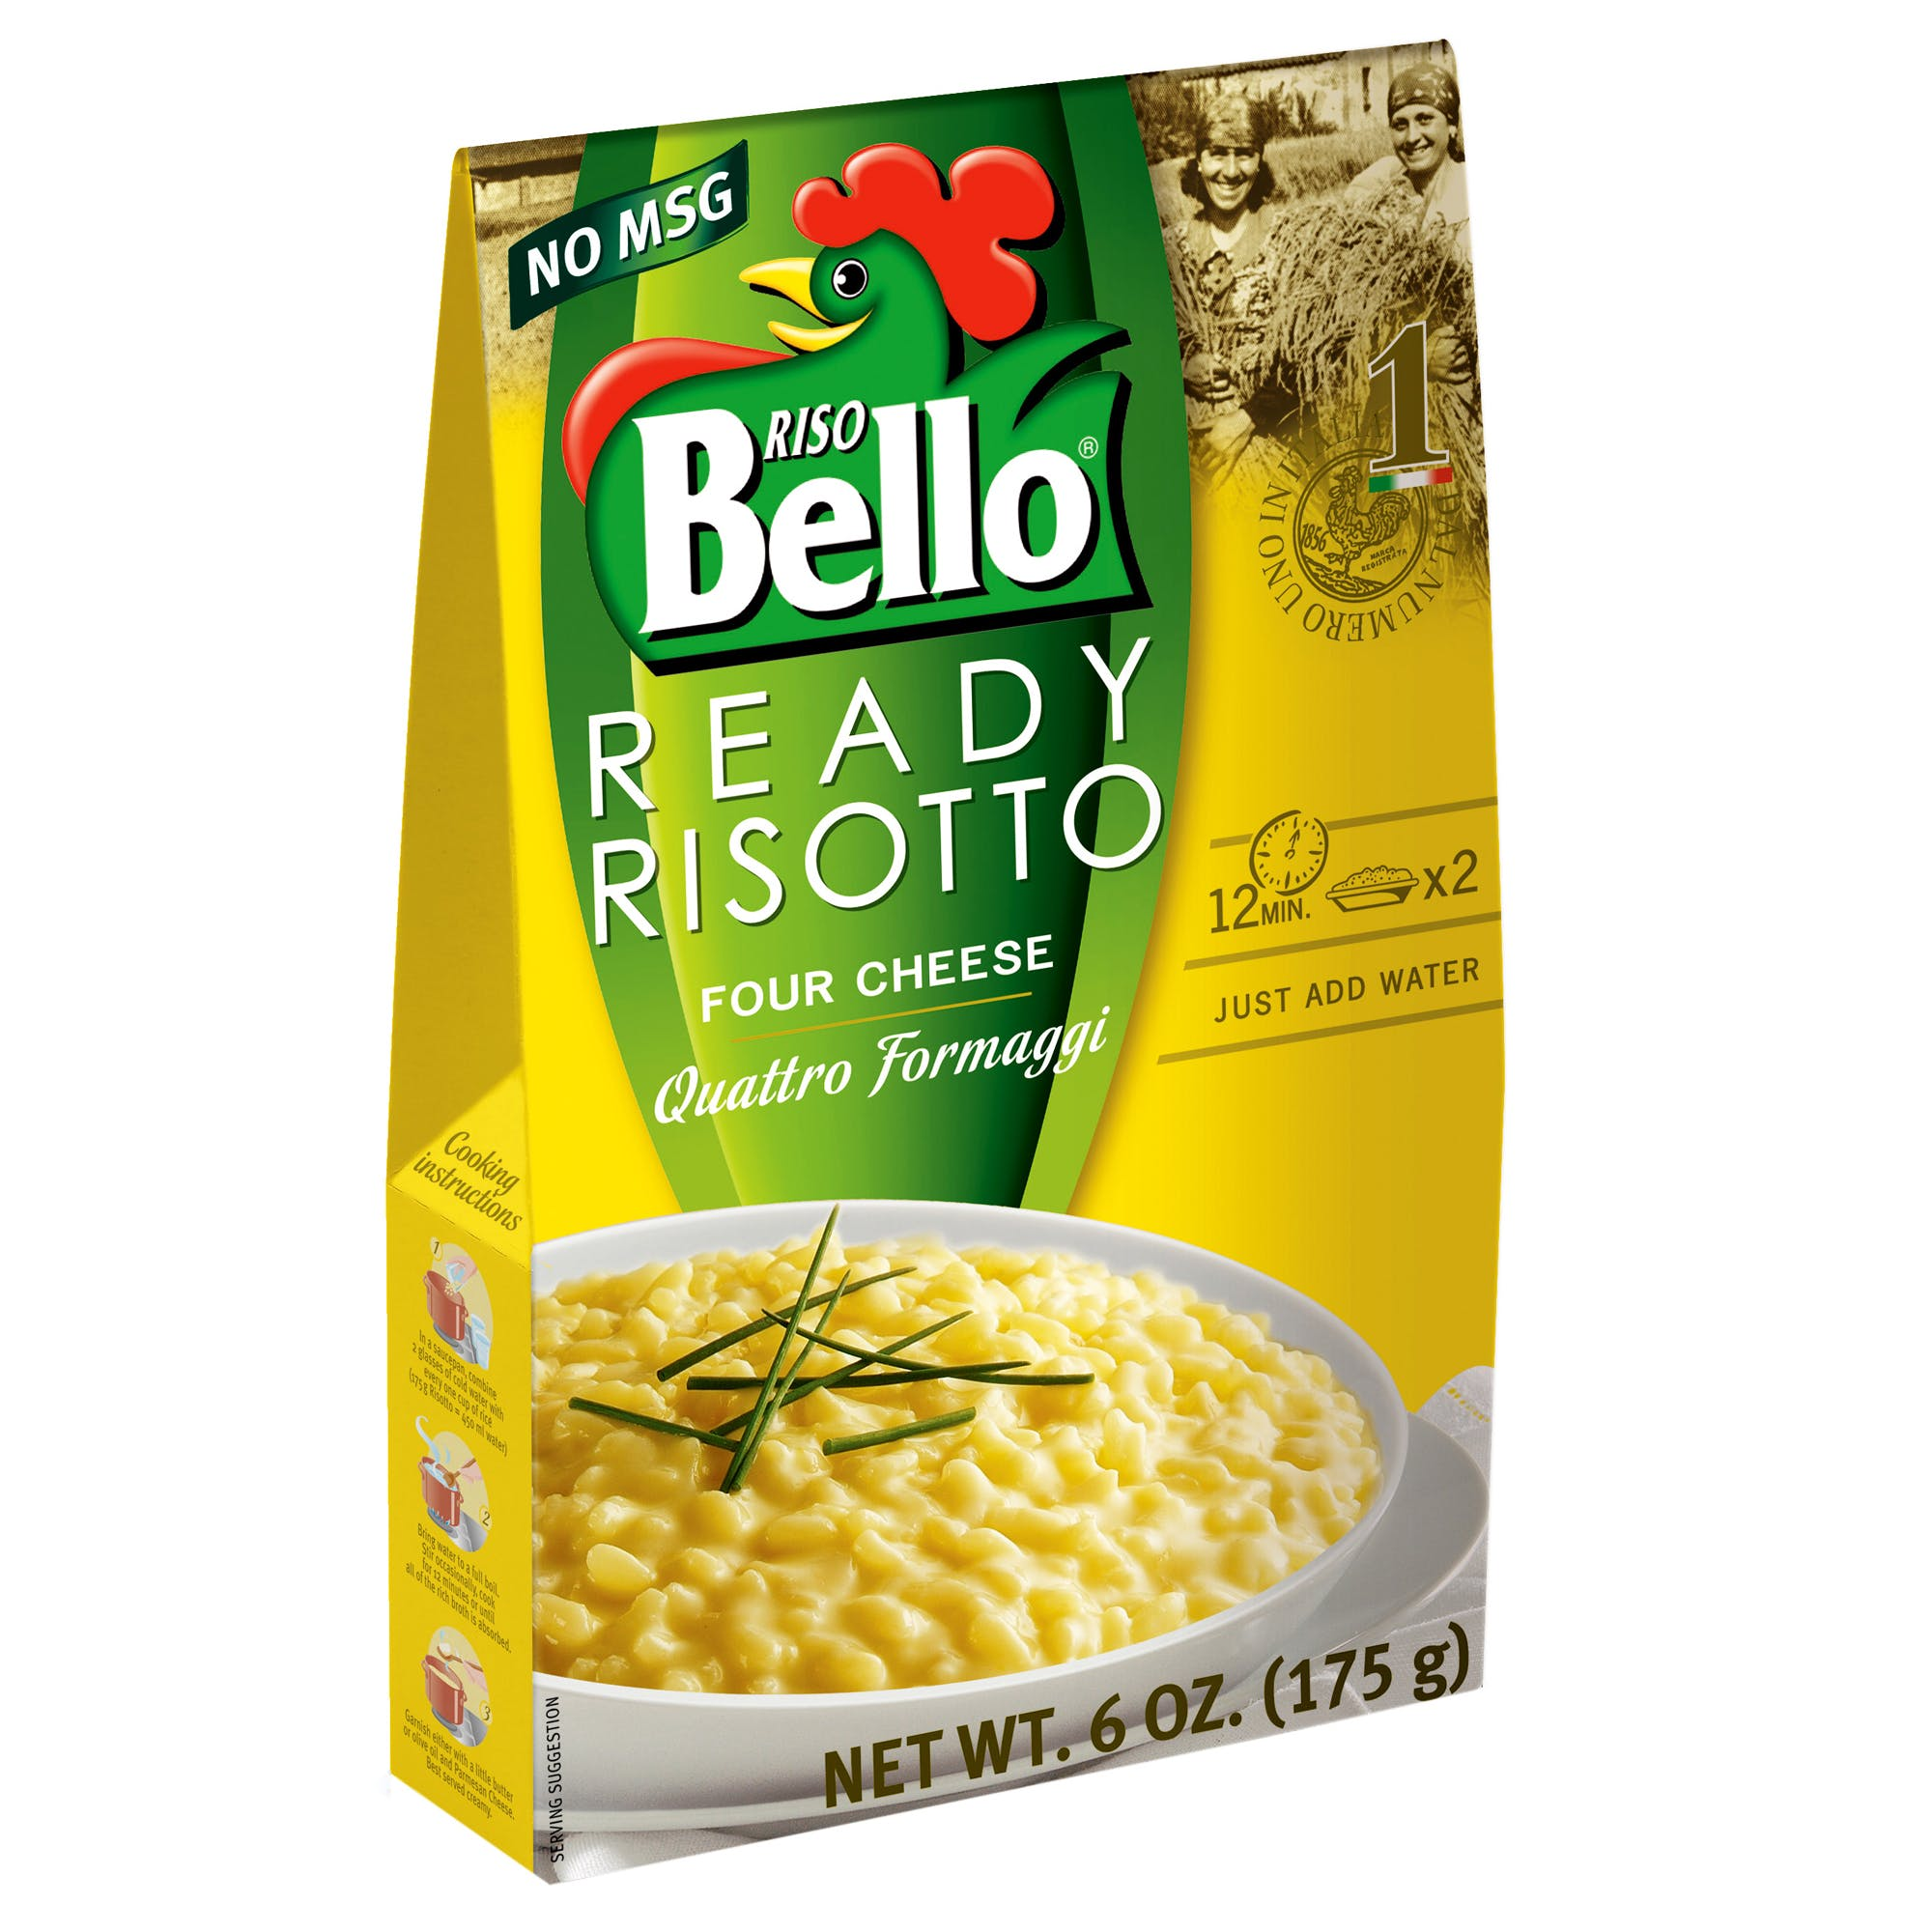 Four Cheese Ready Risotto Rice sold by M5 Corporation